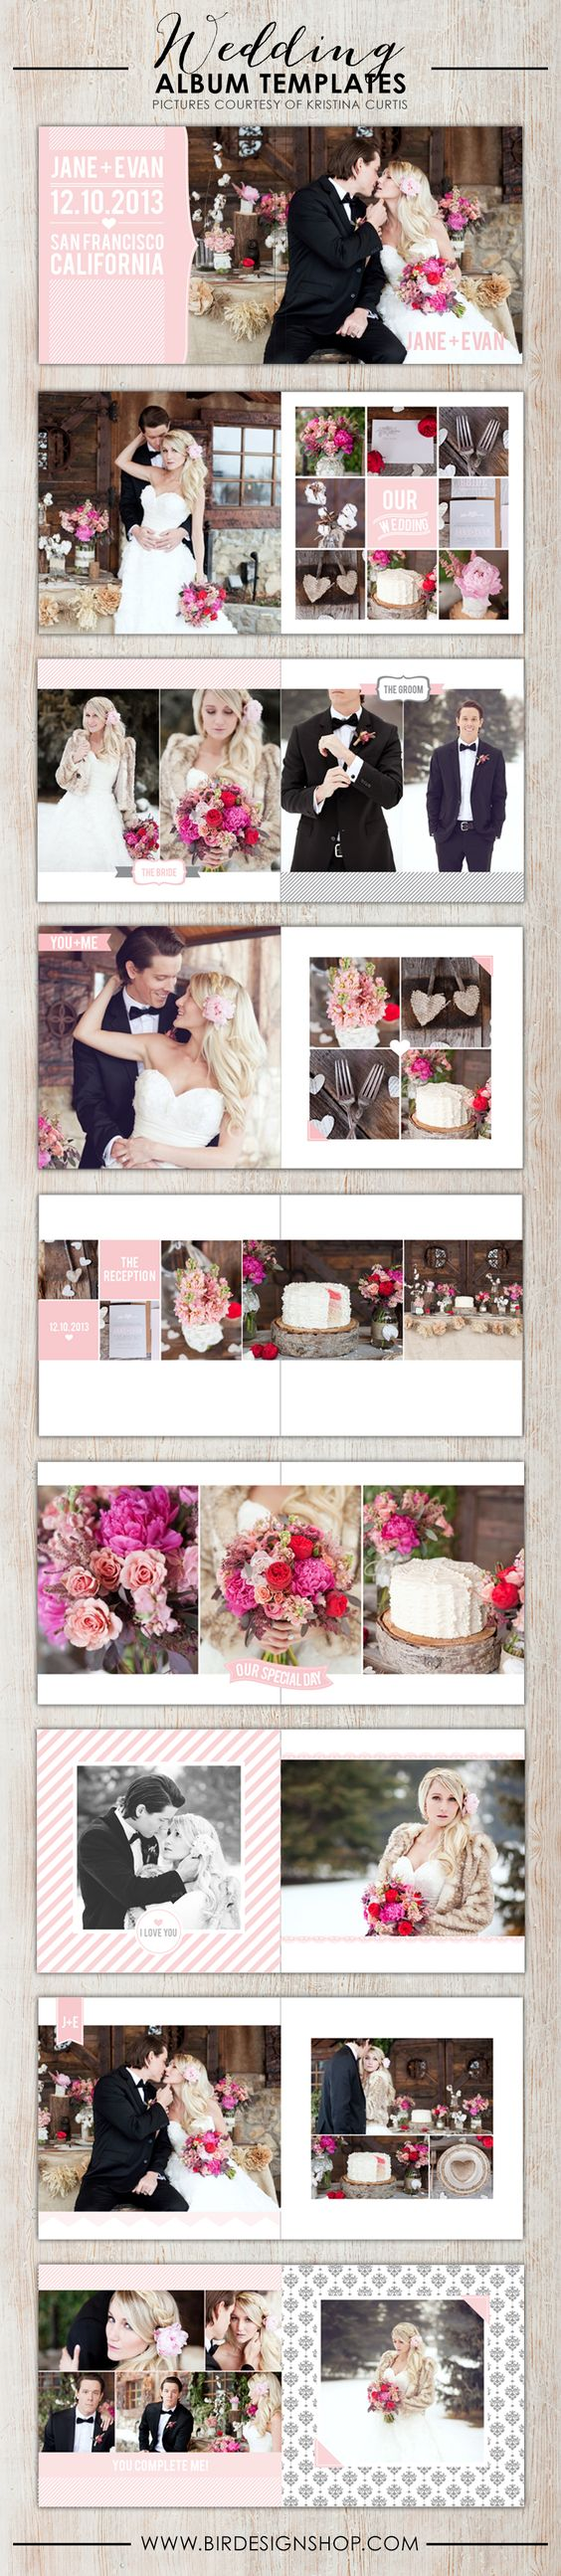 New wedding albums wedding design and classic for Wedding photo album templates in photoshop